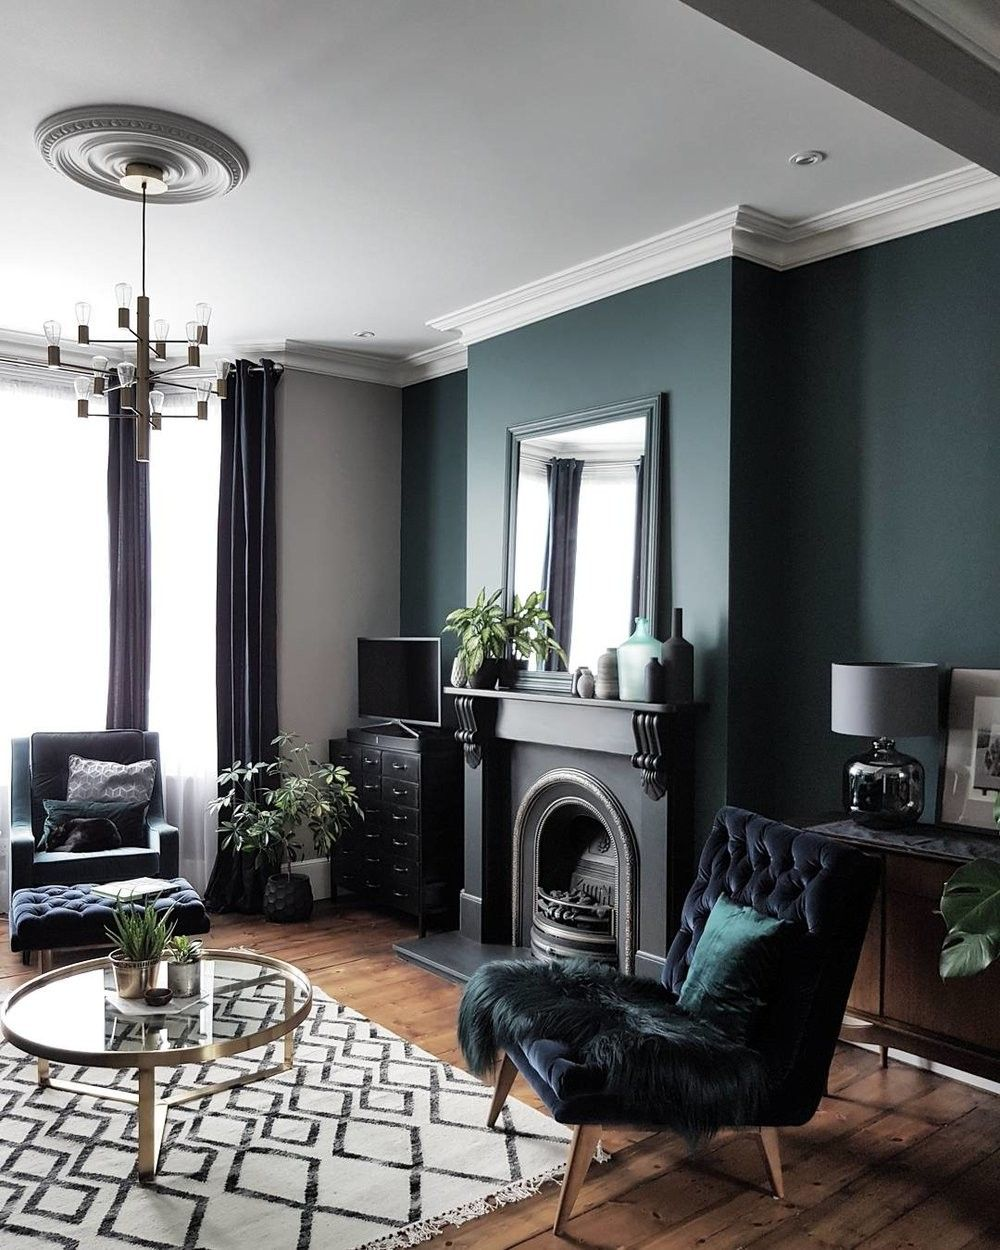 Dark Living Room Ideas: Like Wall Color, Accent Of Plants, Vases, Velvet Chair